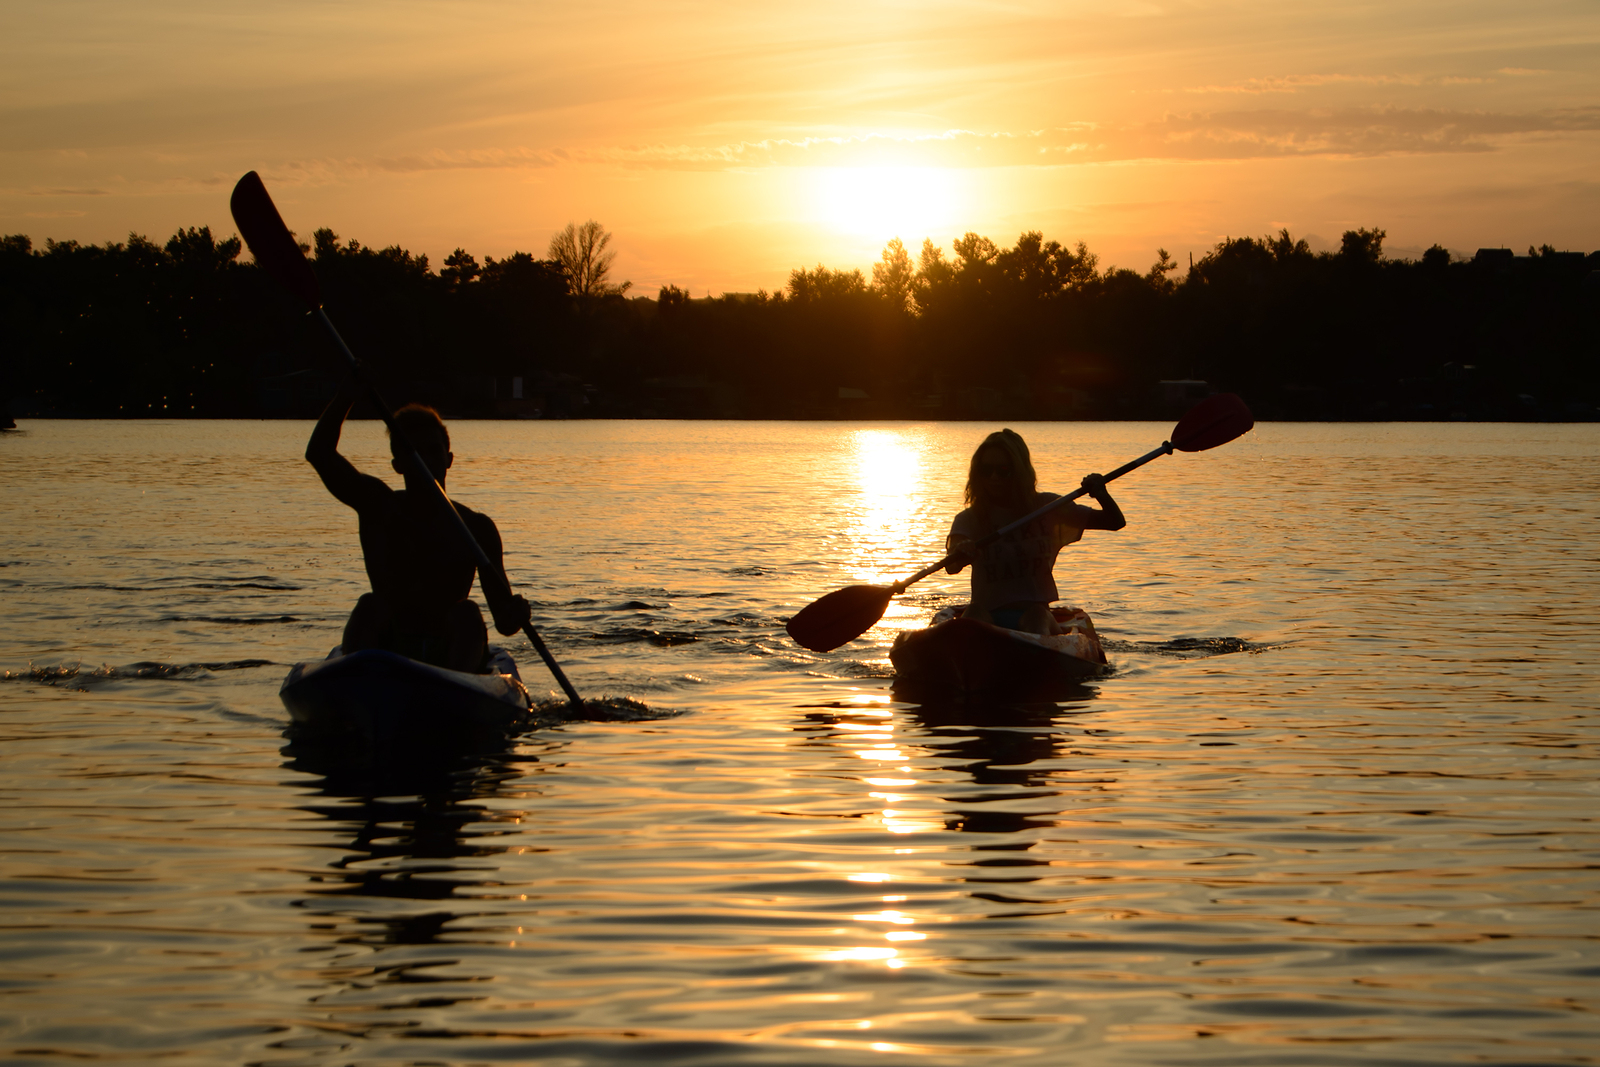 bigstock-Young-Couple-Paddling-Kayaks-o-240647467-1